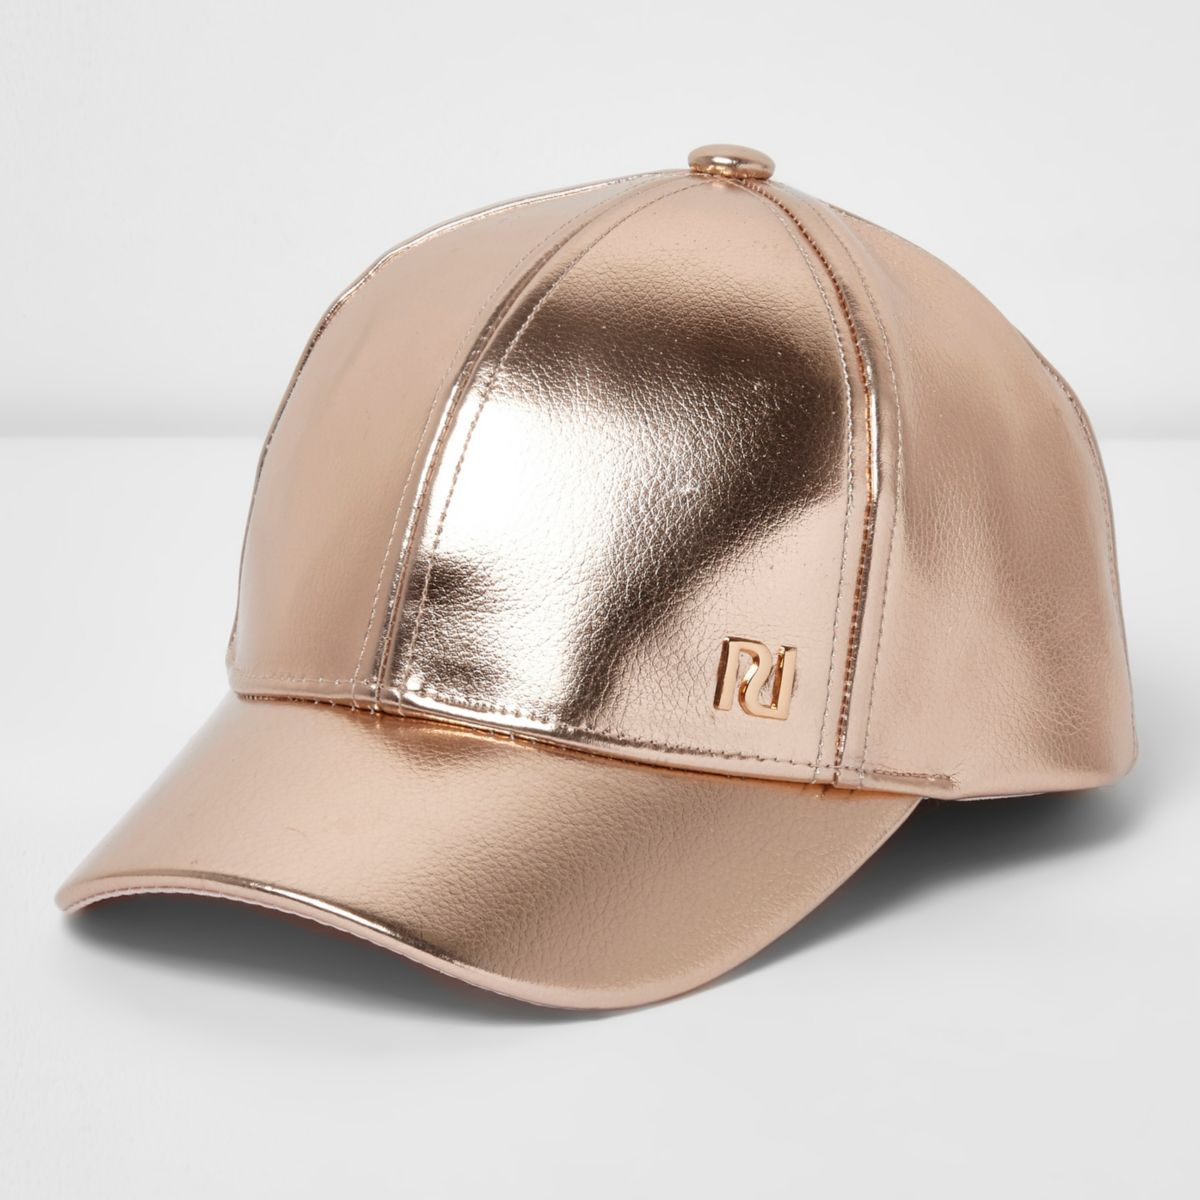 River Island Boys Hats